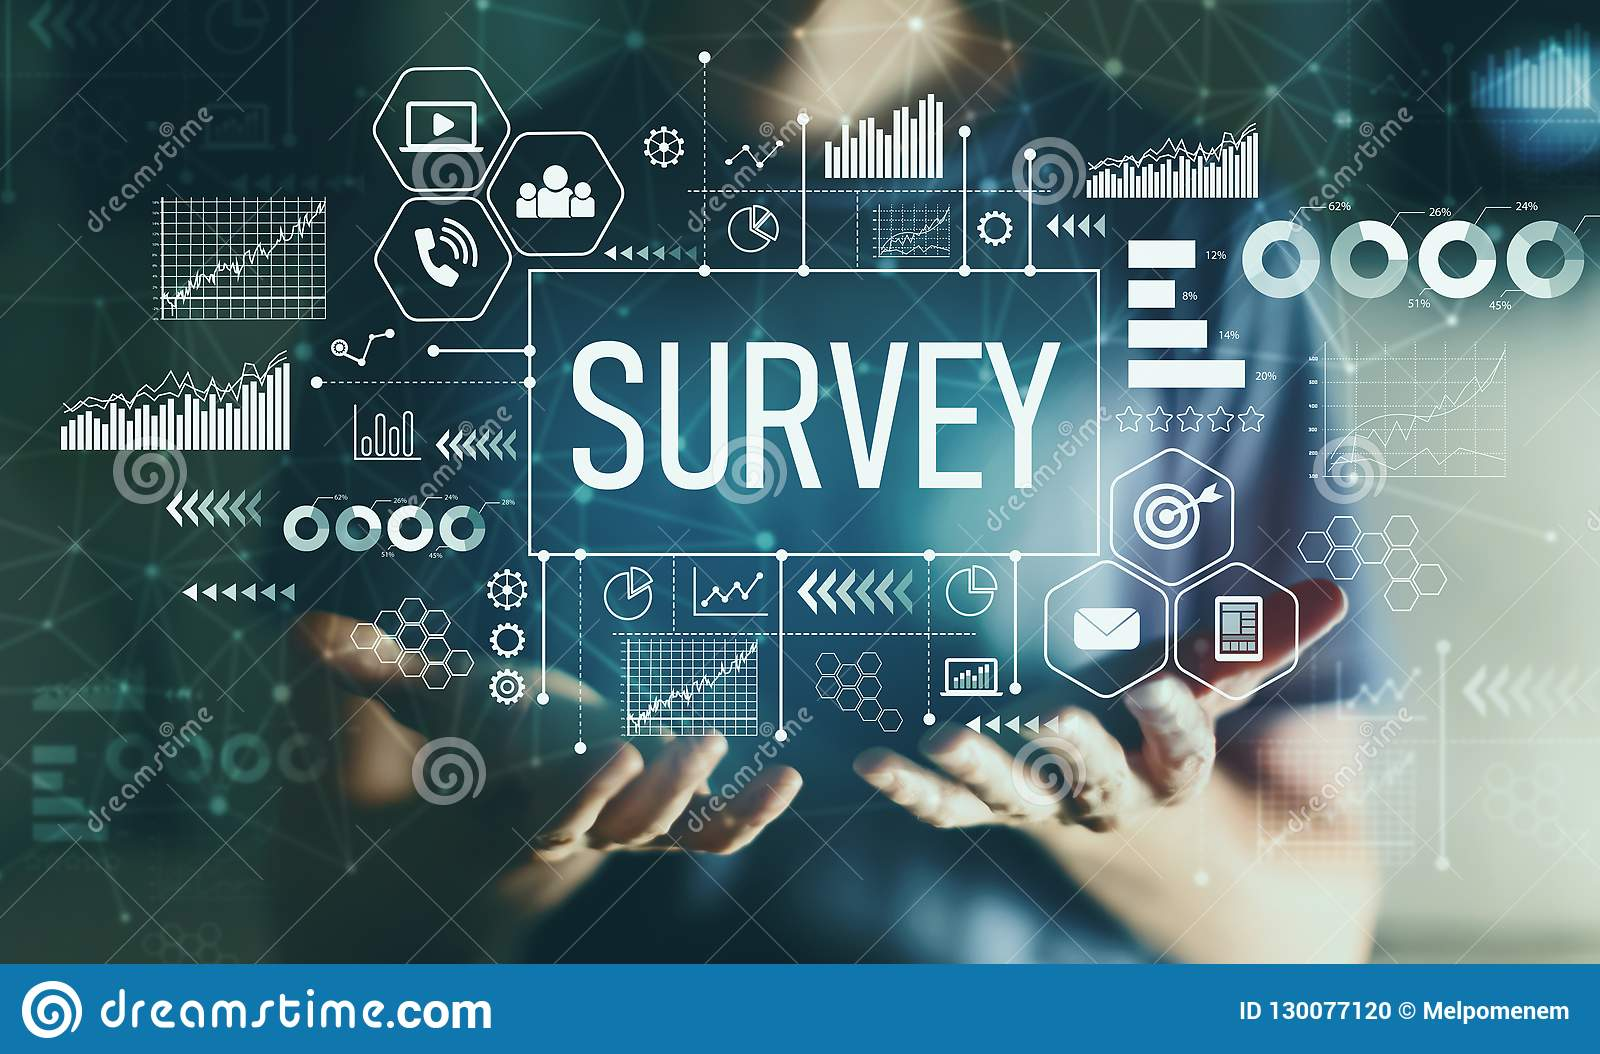 Survey with young man